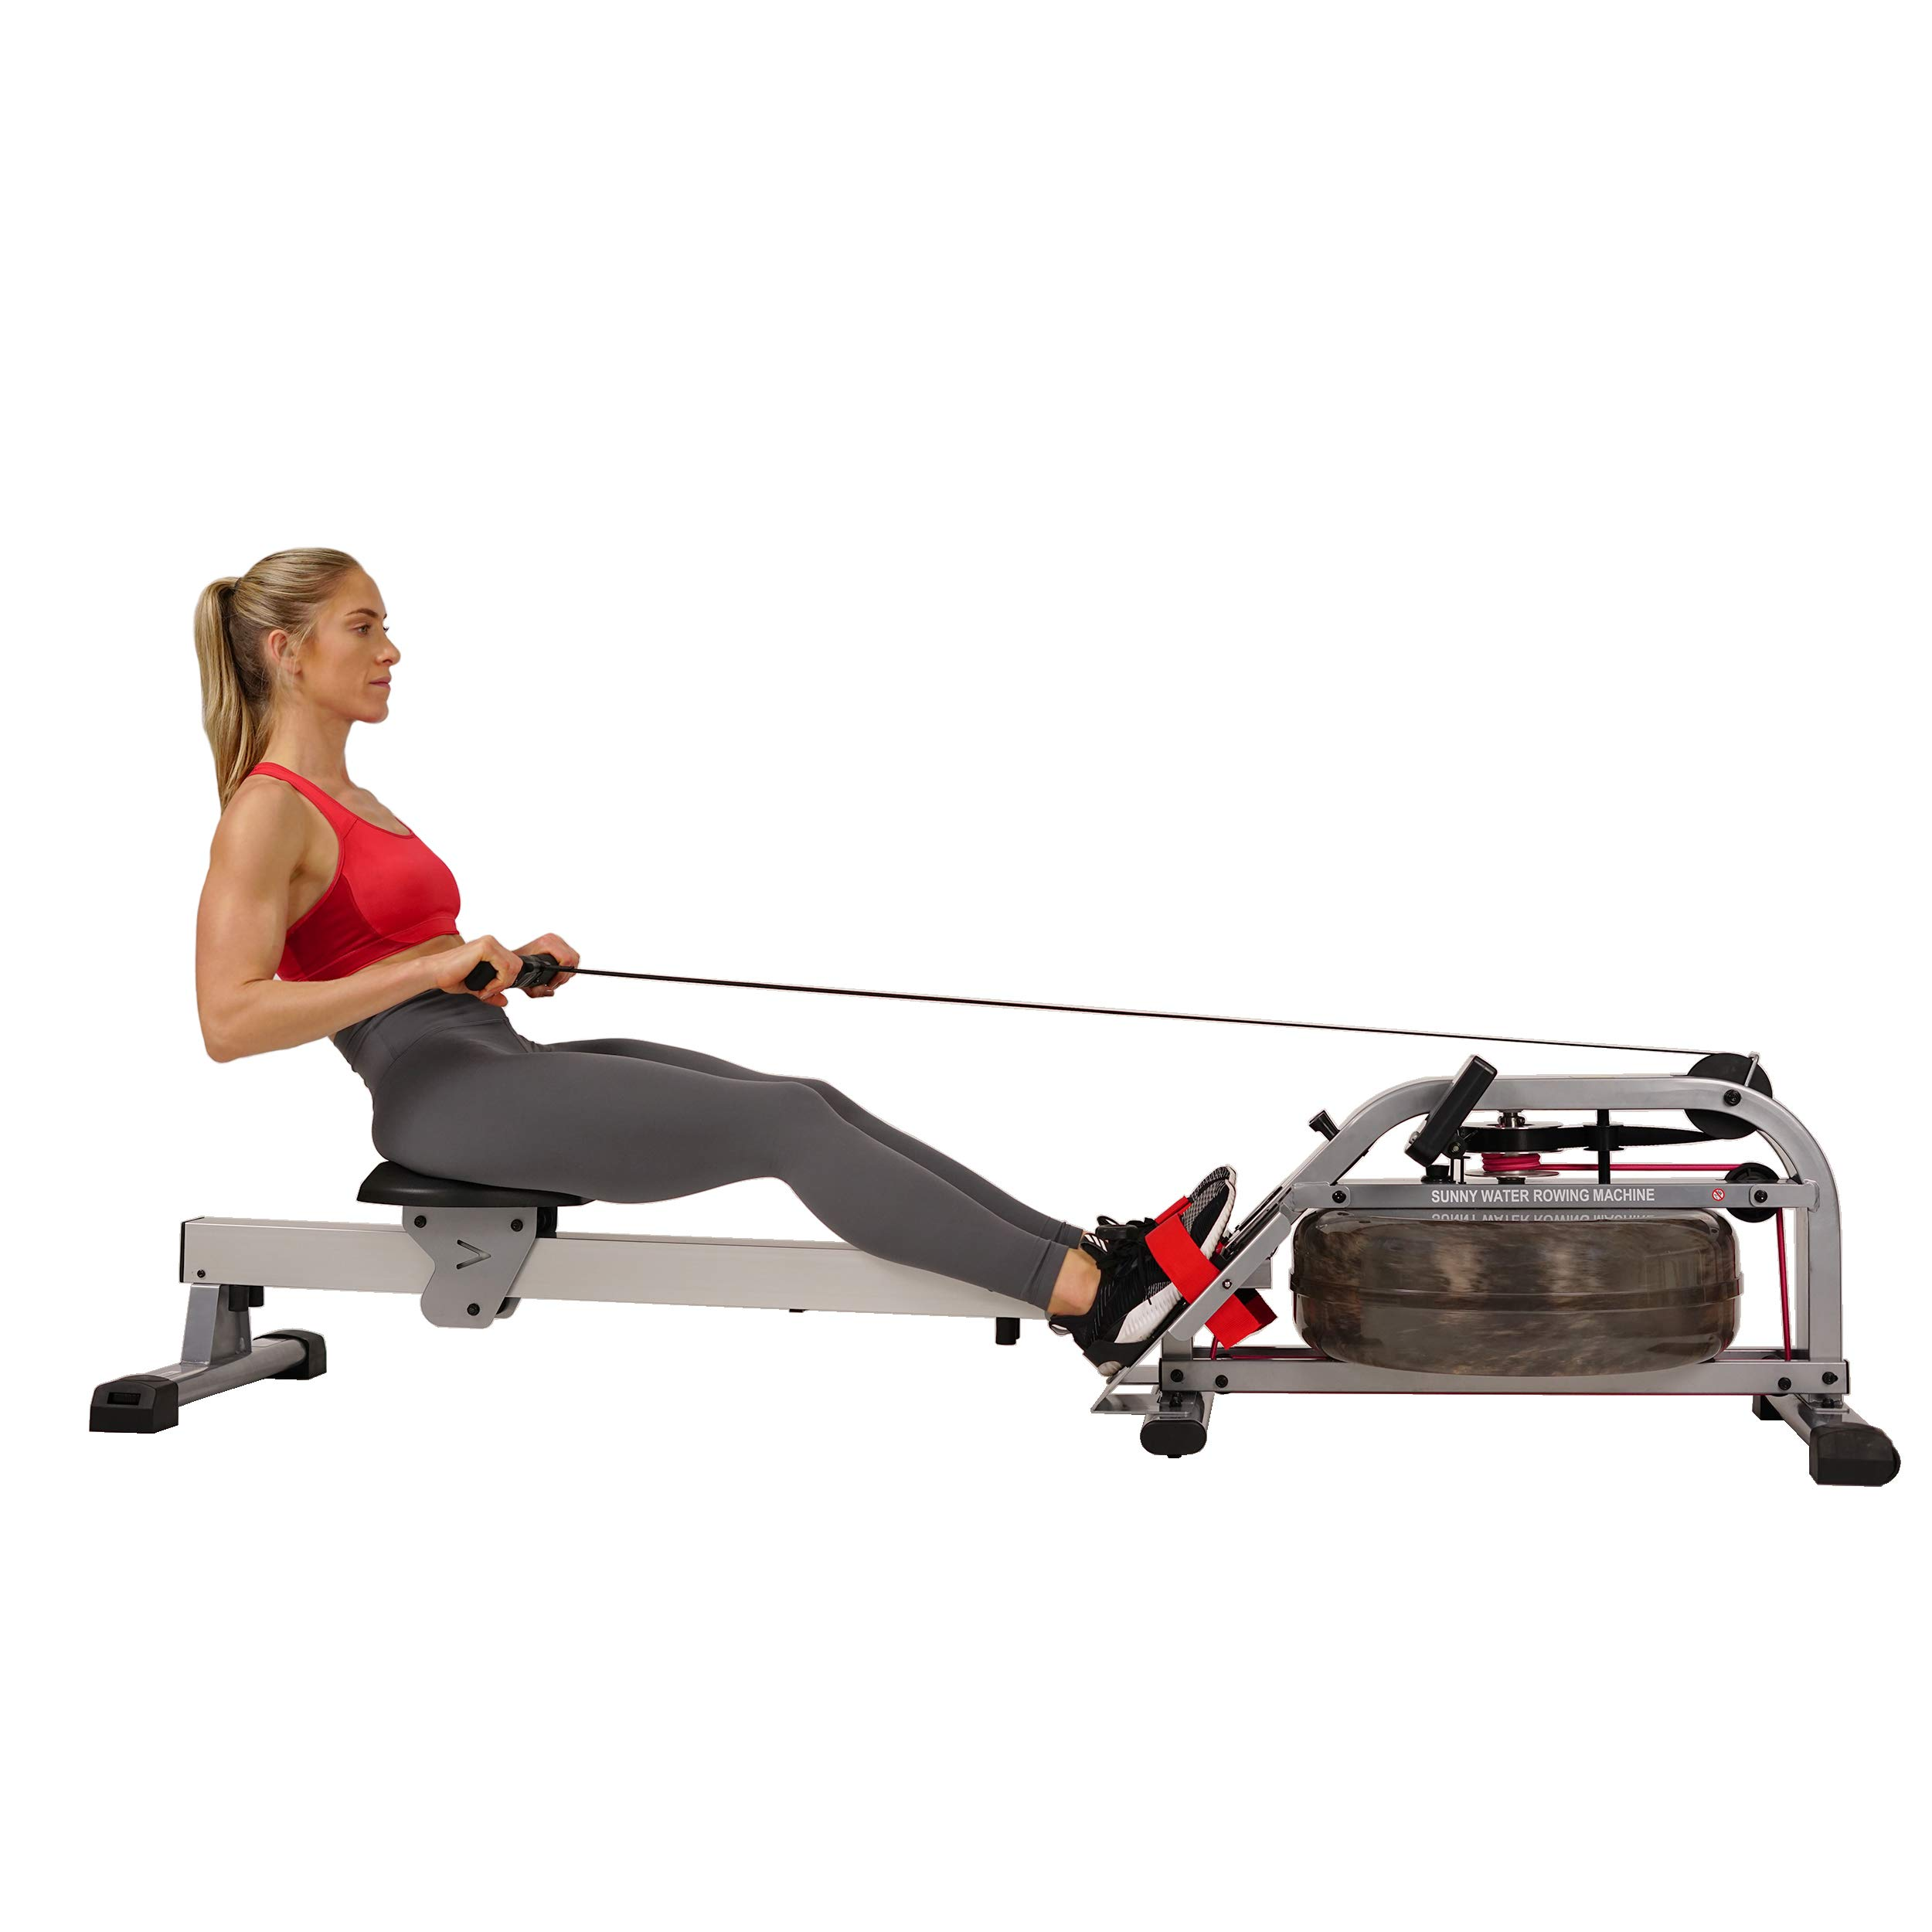 Sunny Health & Fitness Water Rowing Machine Rower w/LCD Monitor - SF-RW5866 by Sunny Health & Fitness (Image #2)